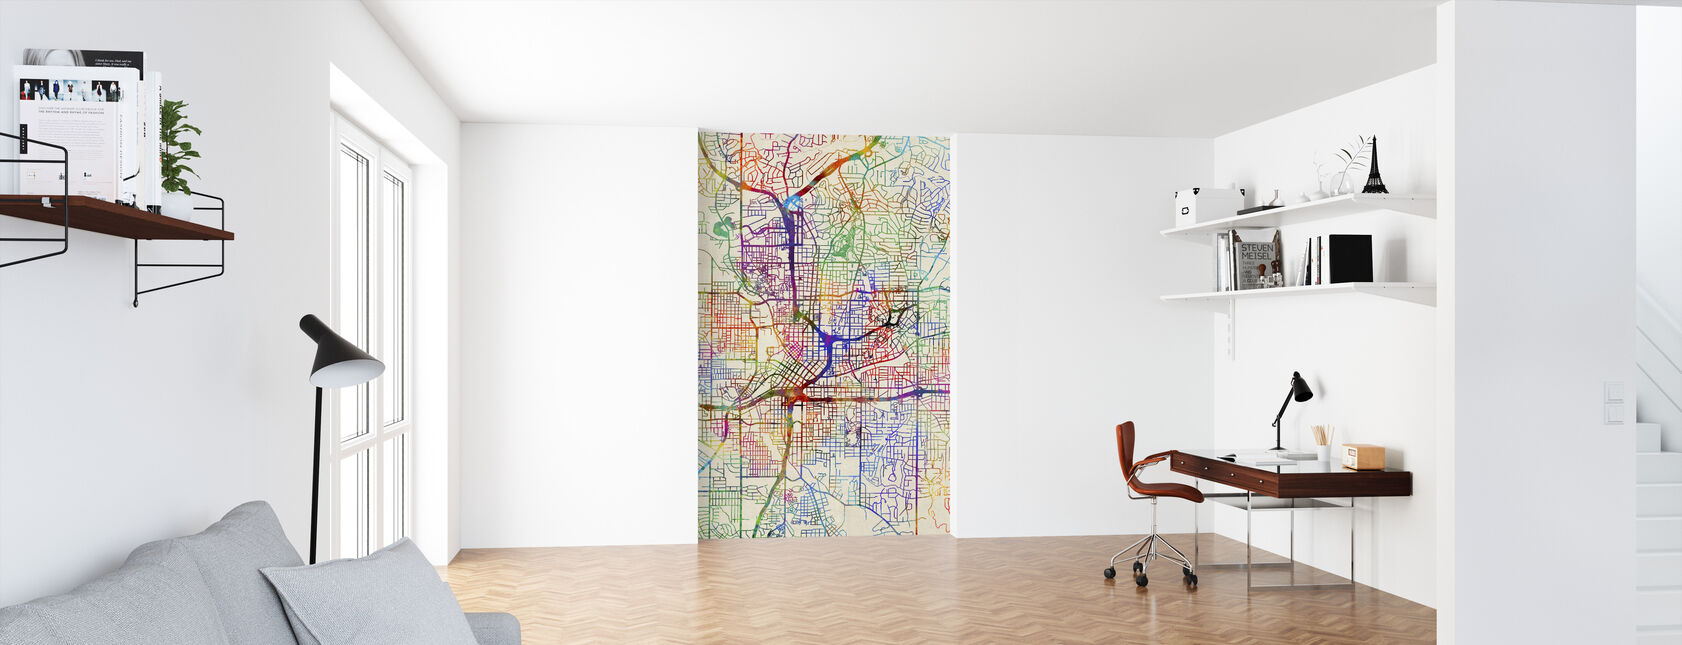 Atlanta Georgia City Map - Wallpaper - Office